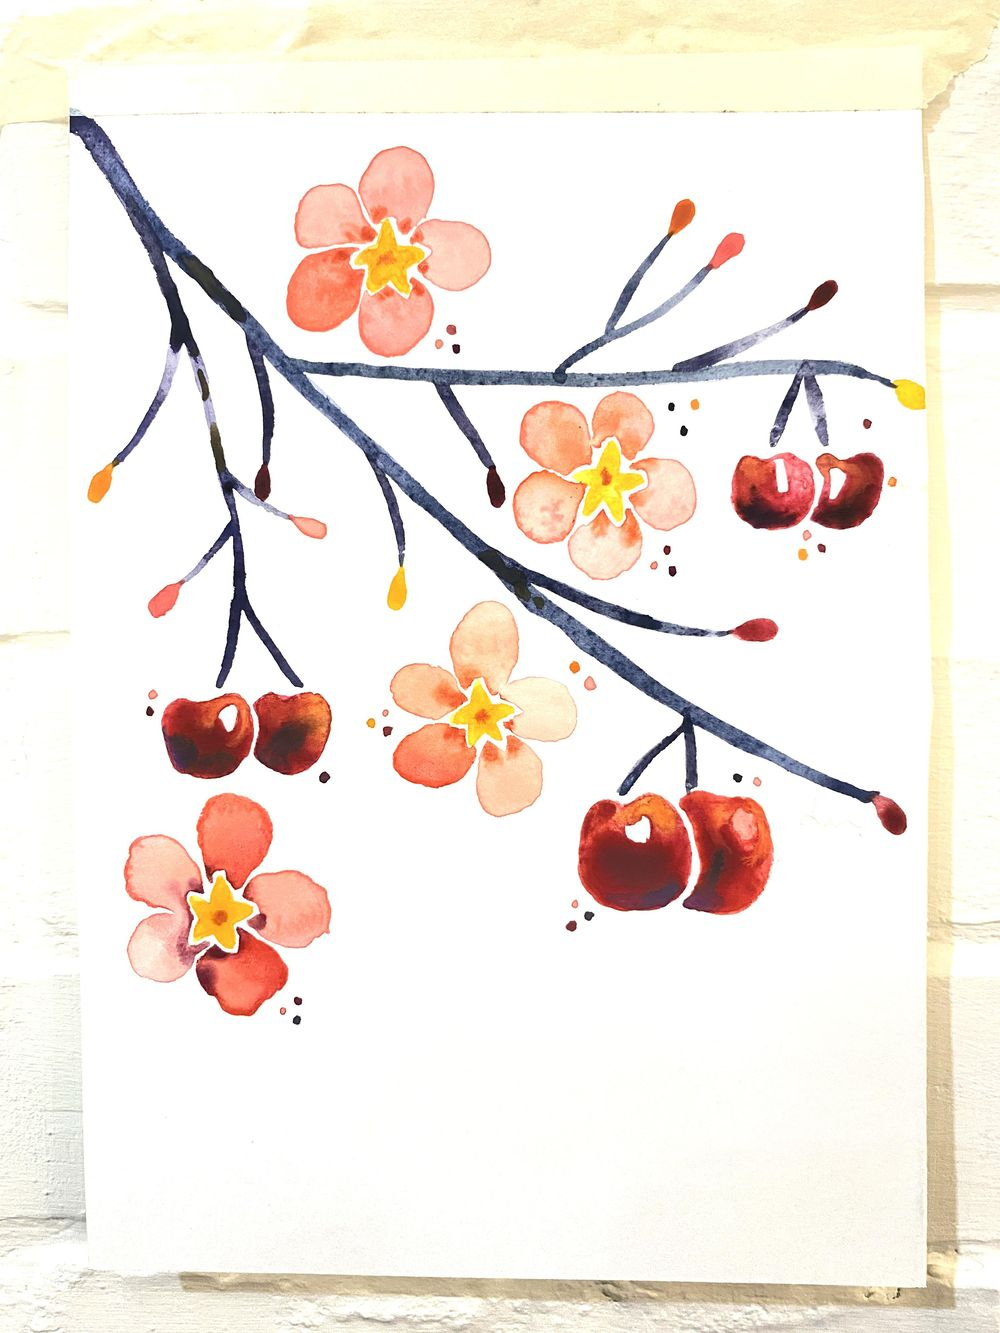 Vera loves watercolor - image 3 - student project